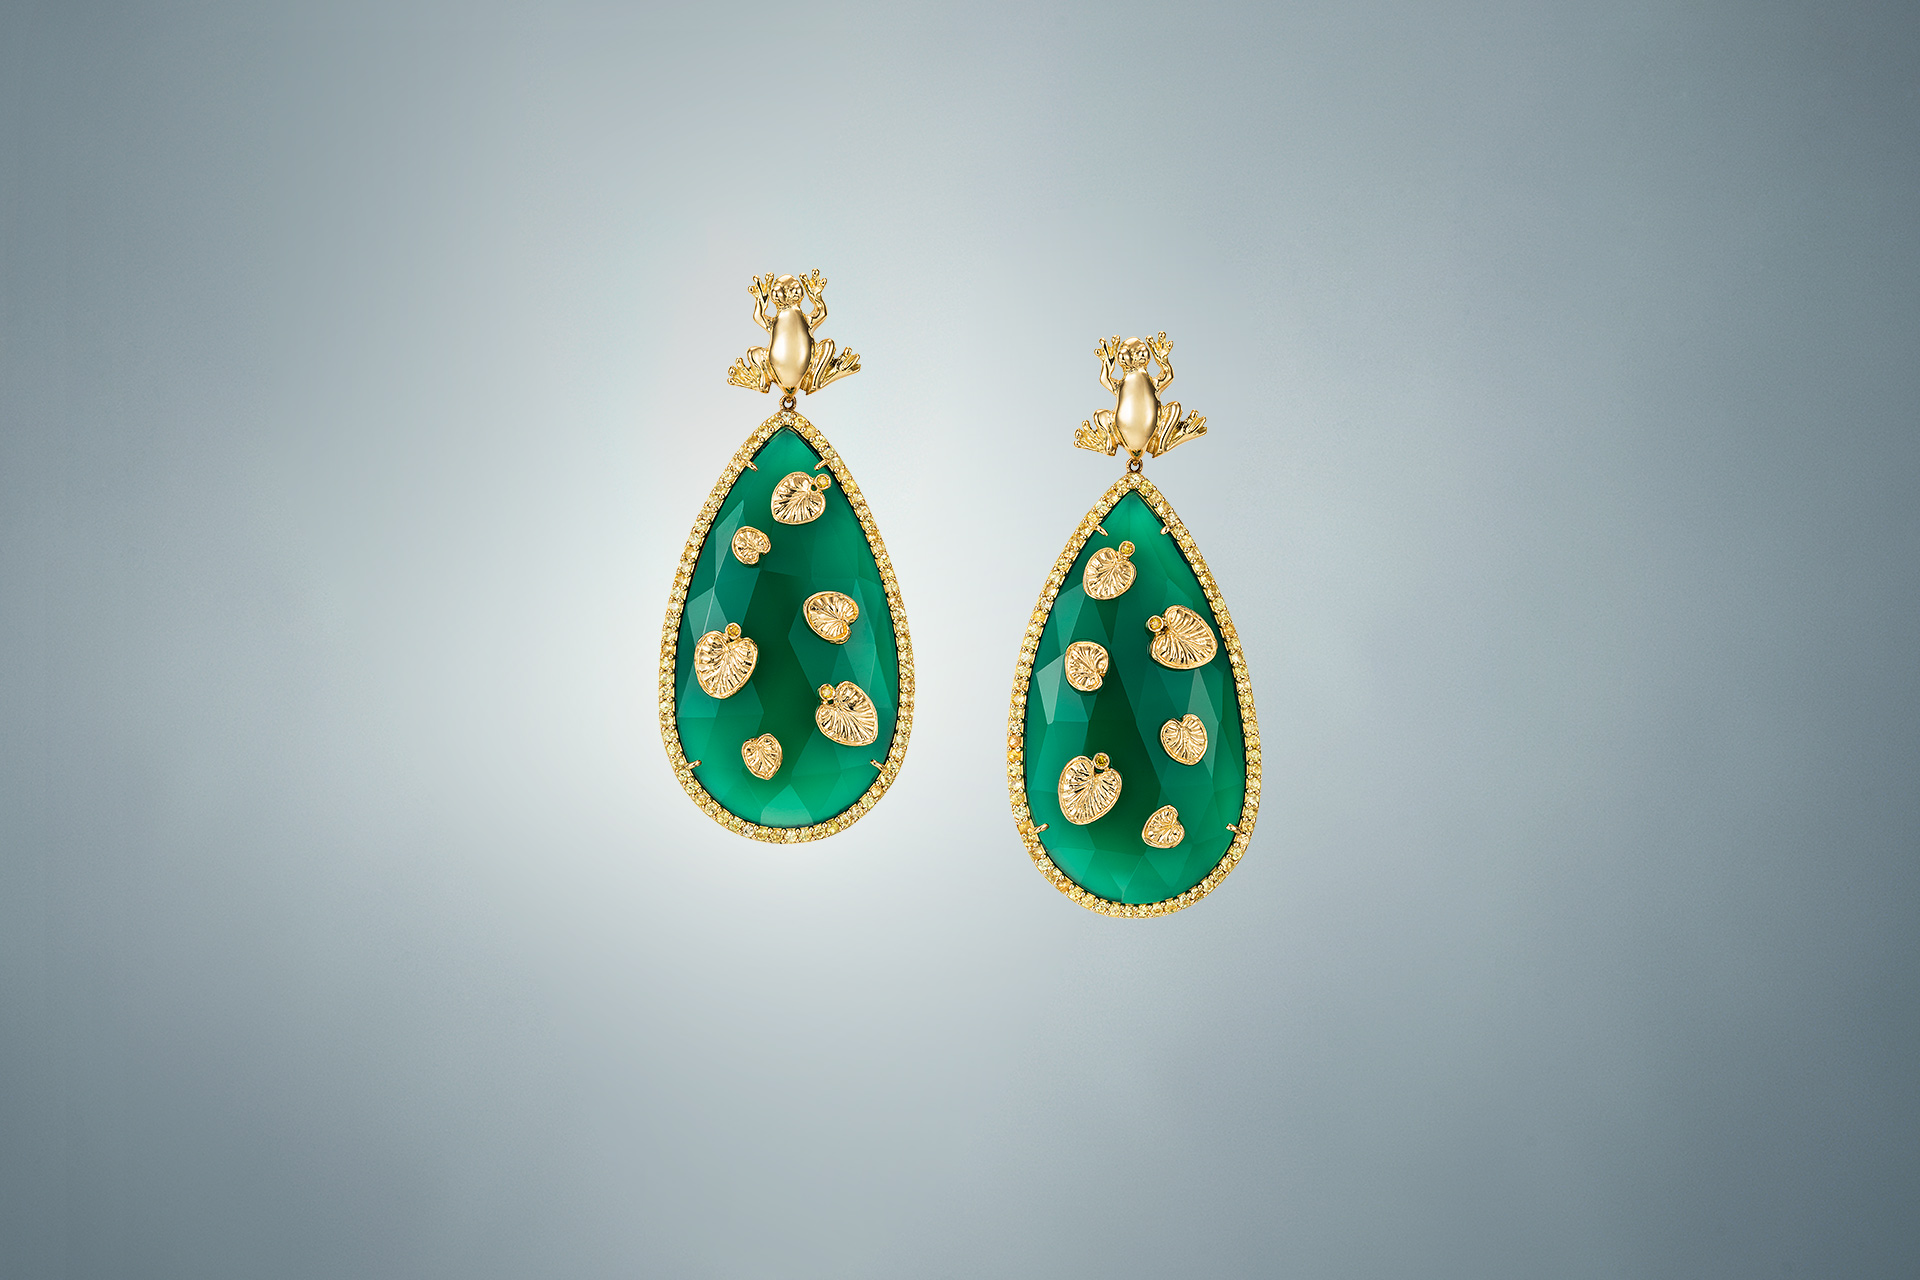 Precious Pond earrings - Maria Kovadi